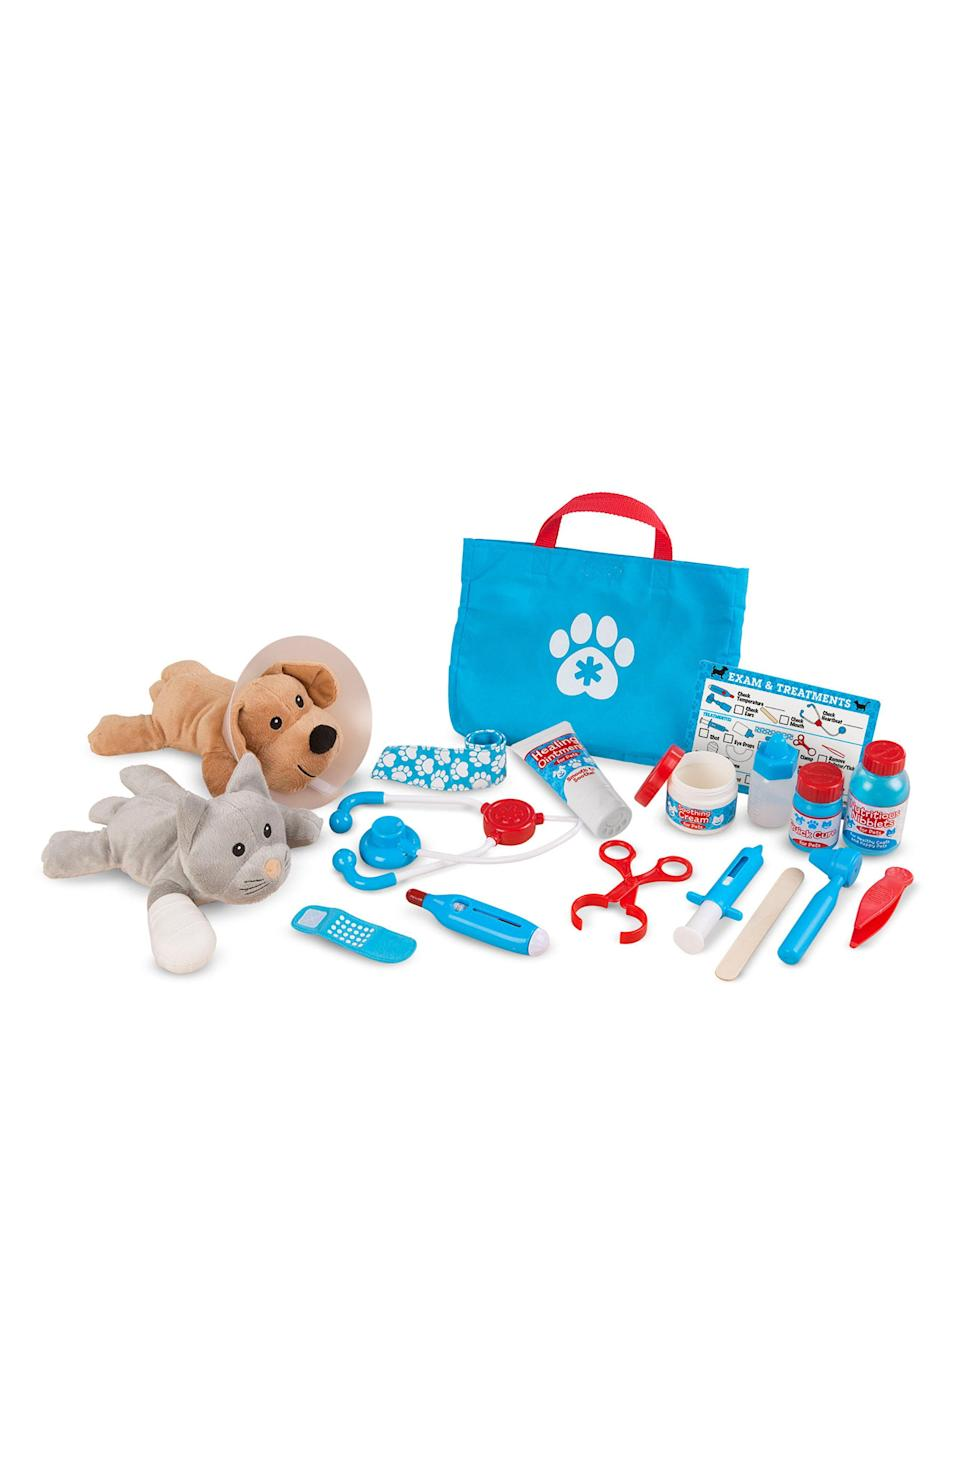 "<p><strong>MELISSA & DOUG</strong></p><p>nordstrom.com</p><p><strong>$29.99</strong></p><p><a href=""https://go.redirectingat.com?id=74968X1596630&url=https%3A%2F%2Fshop.nordstrom.com%2Fs%2Fmelissa-doug-24-piece-pet-vet-play-set%2F4793870&sref=https%3A%2F%2Fwww.redbookmag.com%2Flife%2Fg34811477%2Fblack-friday-cyber-monday-baby-deals-2020%2F"" rel=""nofollow noopener"" target=""_blank"" data-ylk=""slk:Shop Now"" class=""link rapid-noclick-resp"">Shop Now</a></p><p>Calling all future vets.</p>"